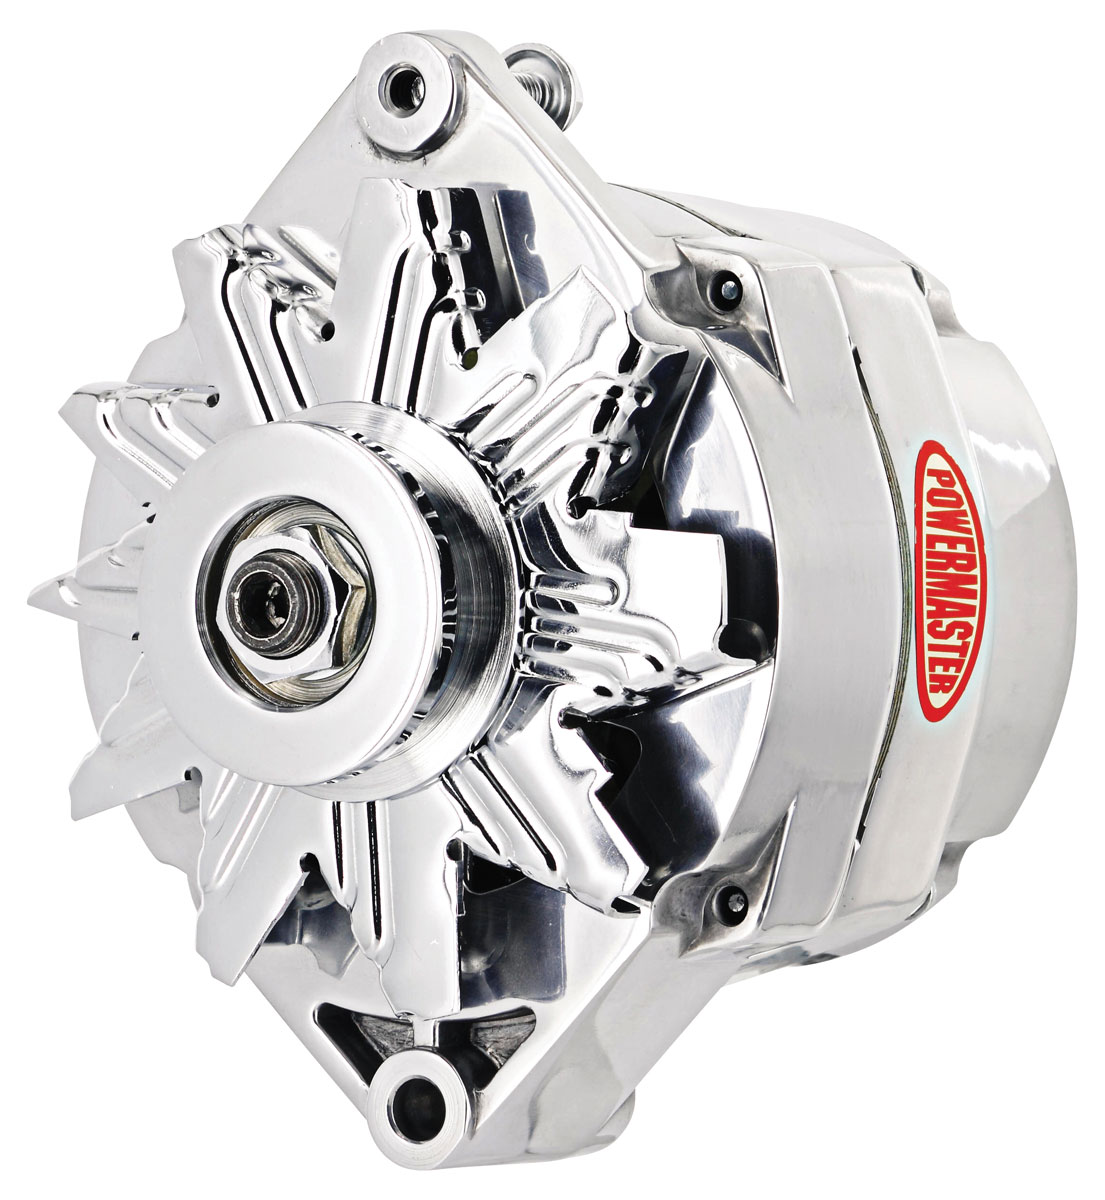 Alternator, Powermaster, 1959-88 GM Cars, 12SI Polished, 100 Amp, 1V